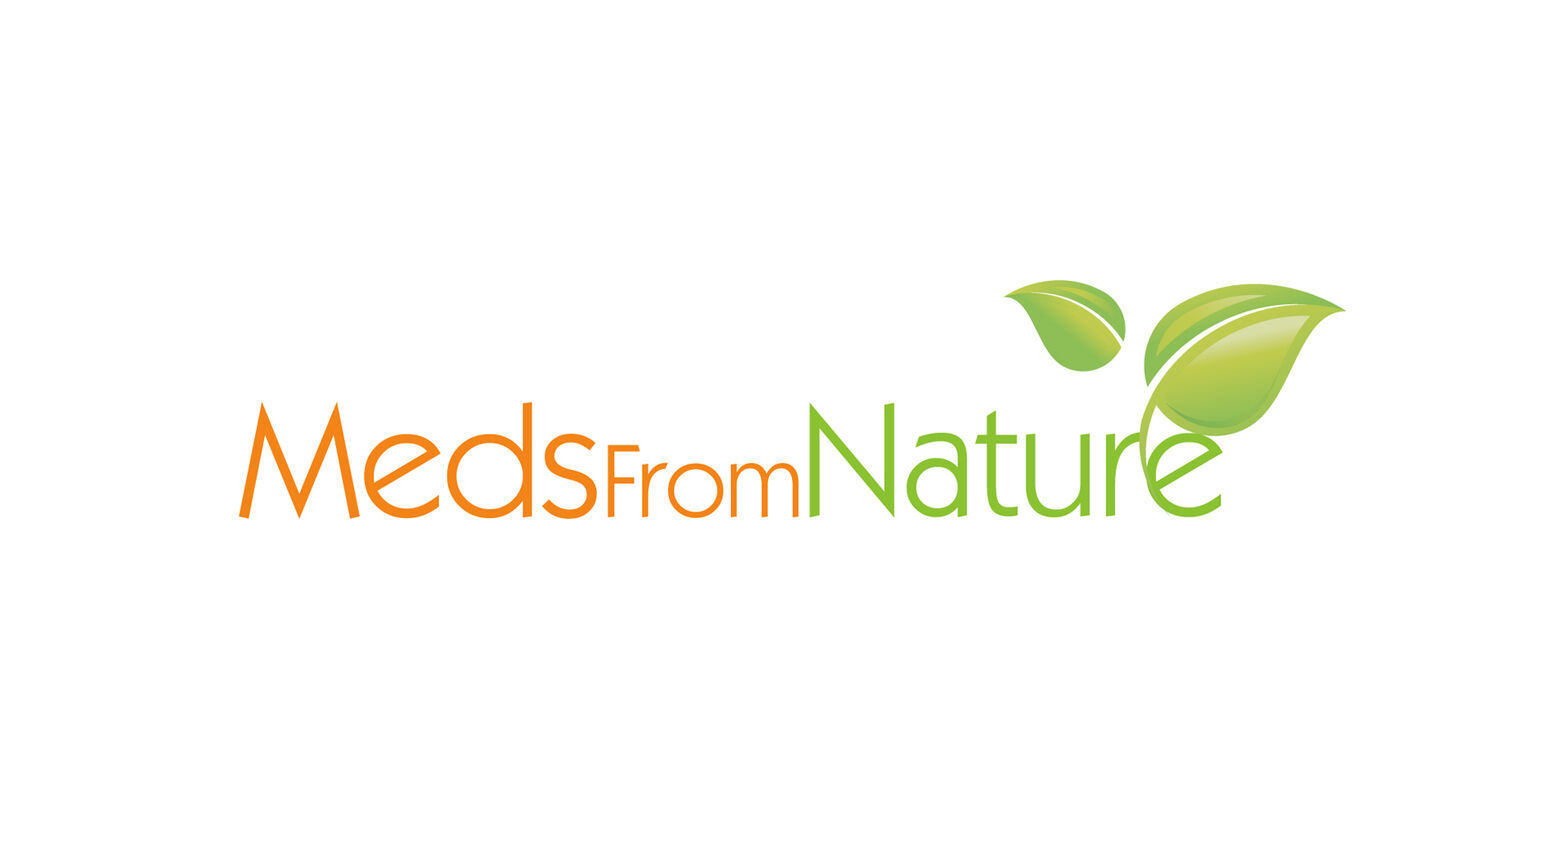 Meds From Nature